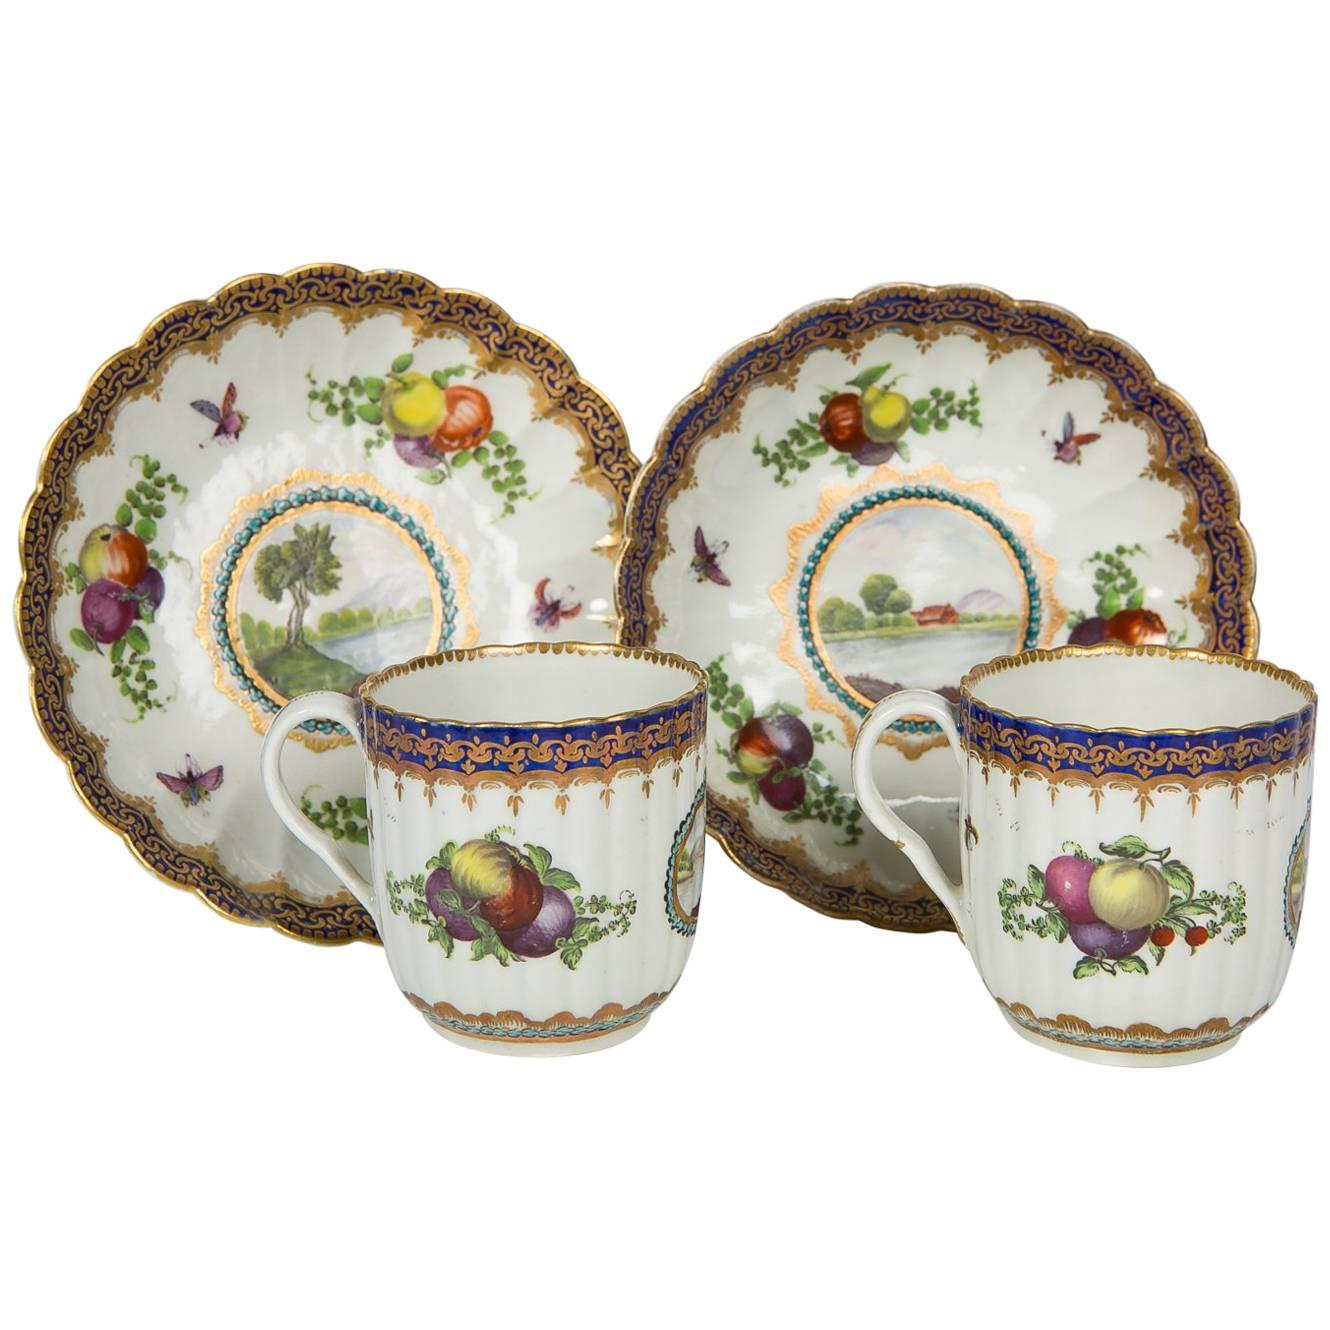 Worcester Porcelain 18th Century Cups and Saucers Pair in 'Dalhousie' Pattern